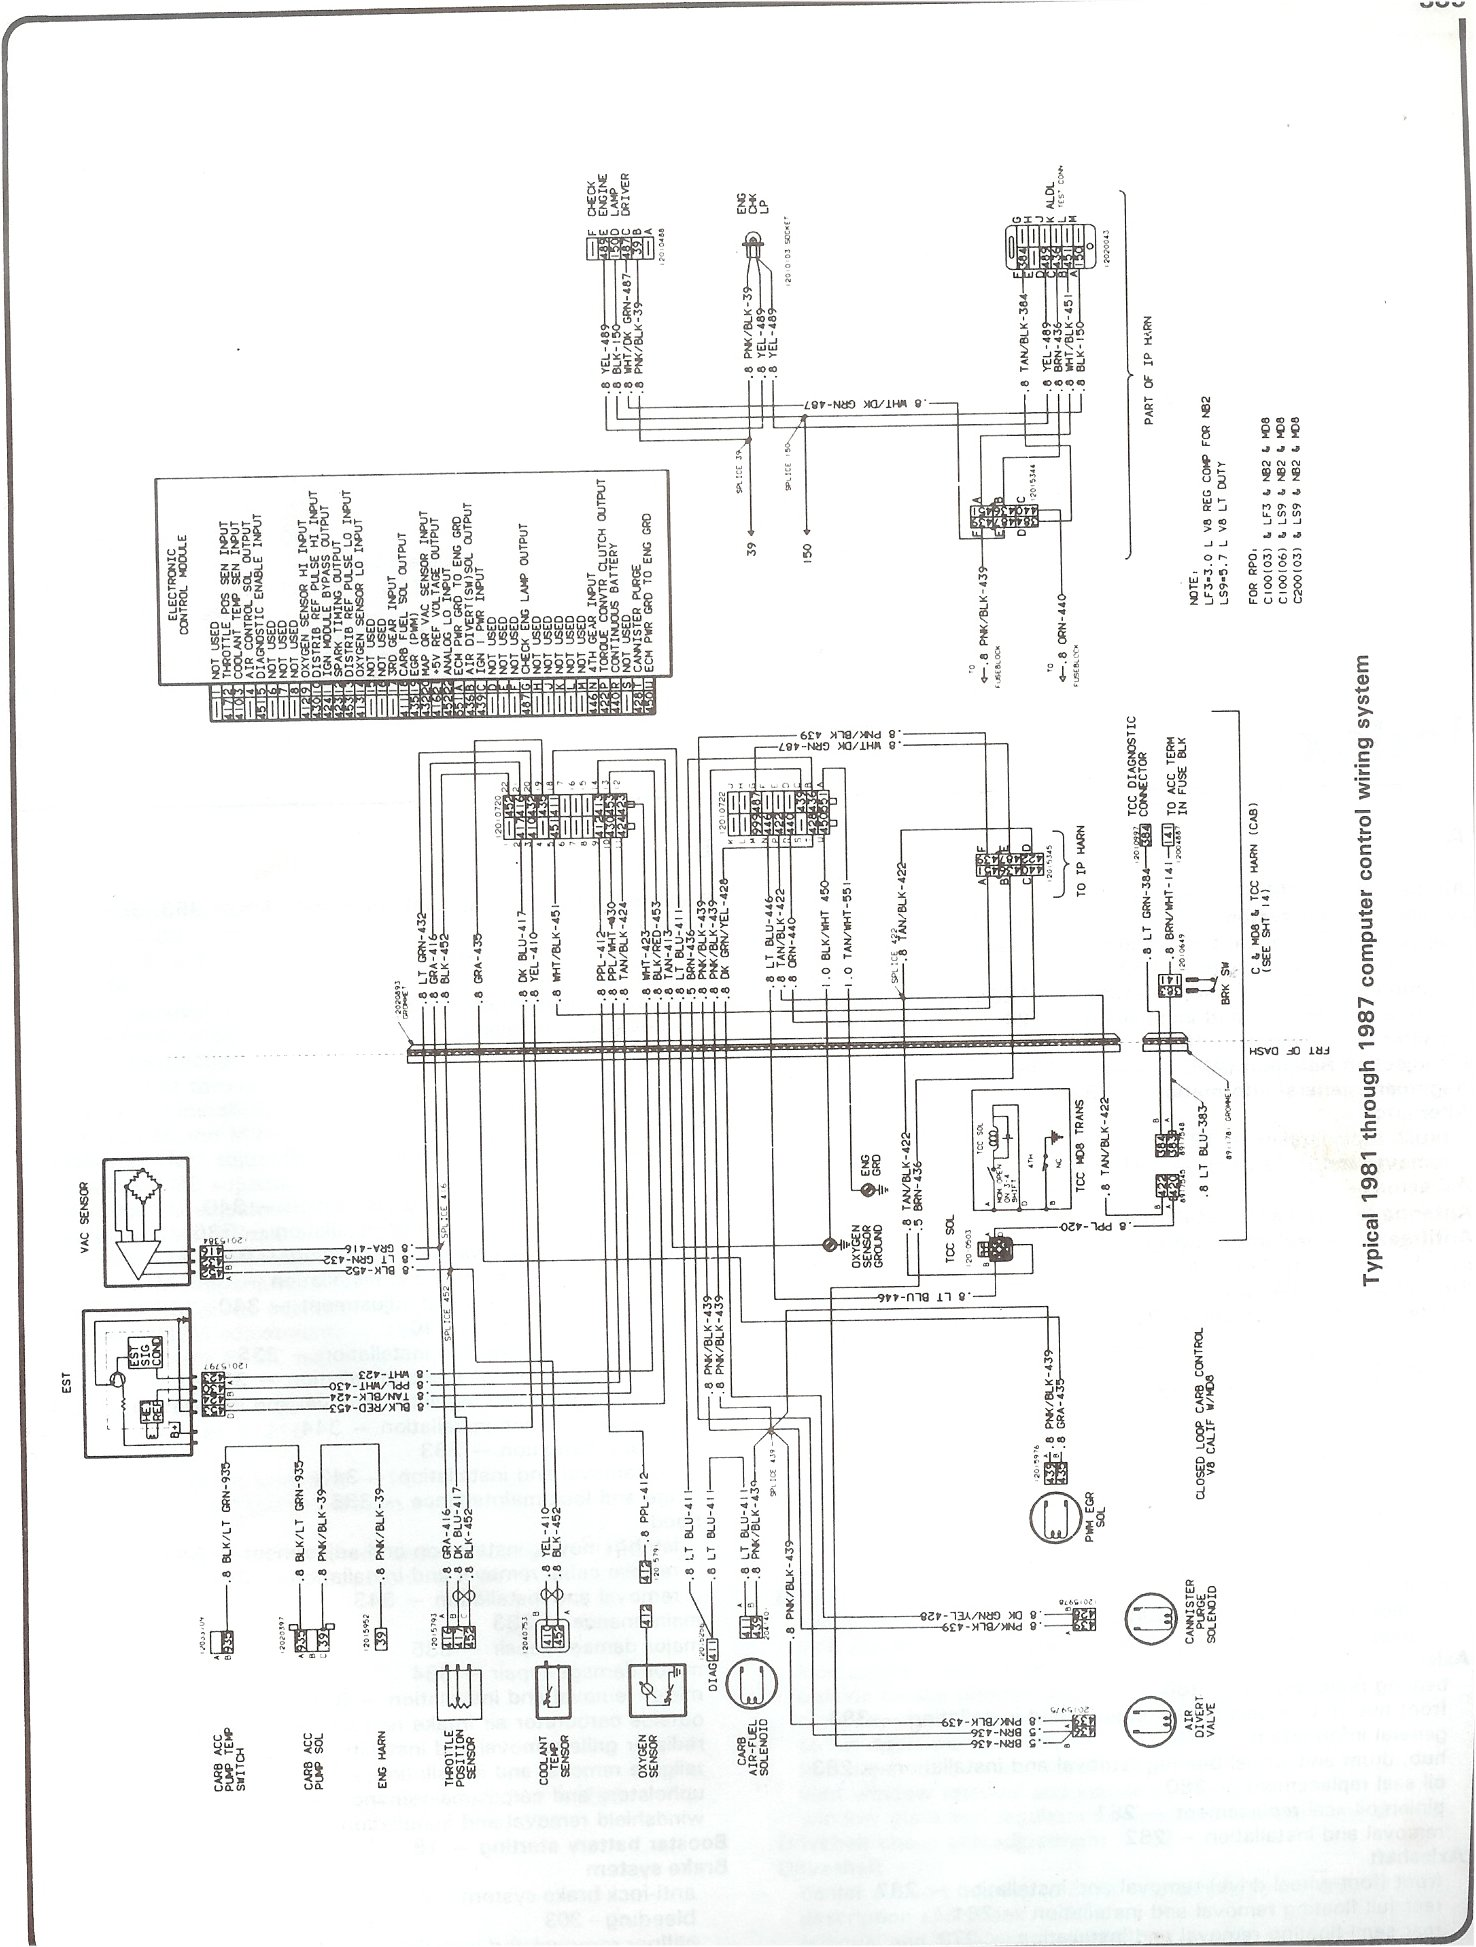 Complete 73 87 Wiring Diagrams 02 Chevy Blazer Wiring Diagram 1975 Chevy Blazer  Wiring Diagram